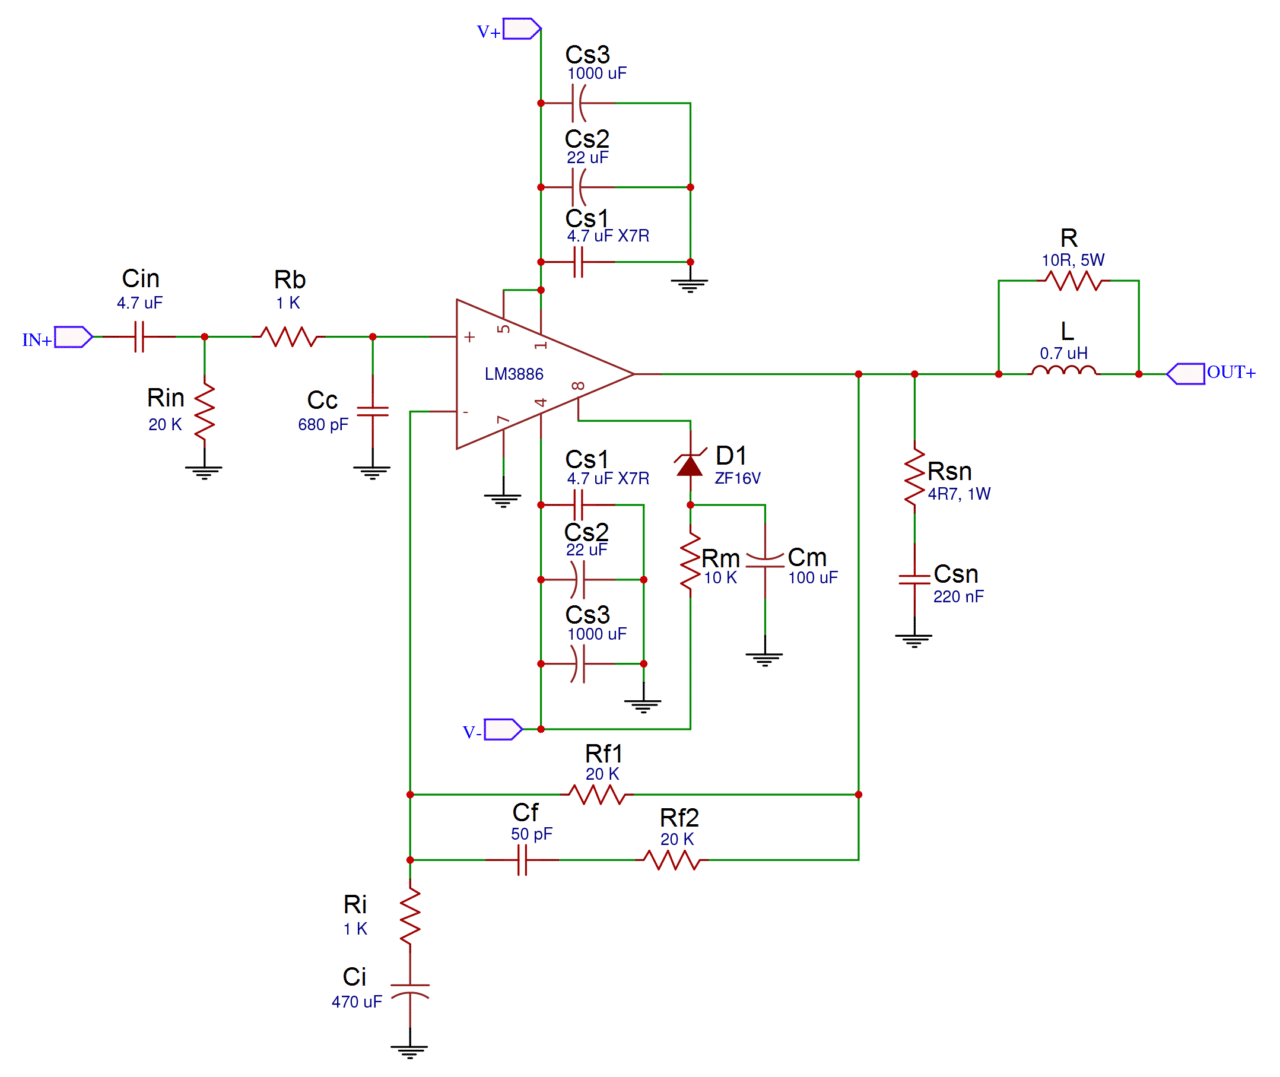 A Complete Guide To Design And Build Hi Fi Lm3886 Amplifier The Circuit Was Designed Create Frequency Convert With Use Of Ill Be Using Schematic Below Its Basically Same As One In Datasheet But Optional Stability Components Included How